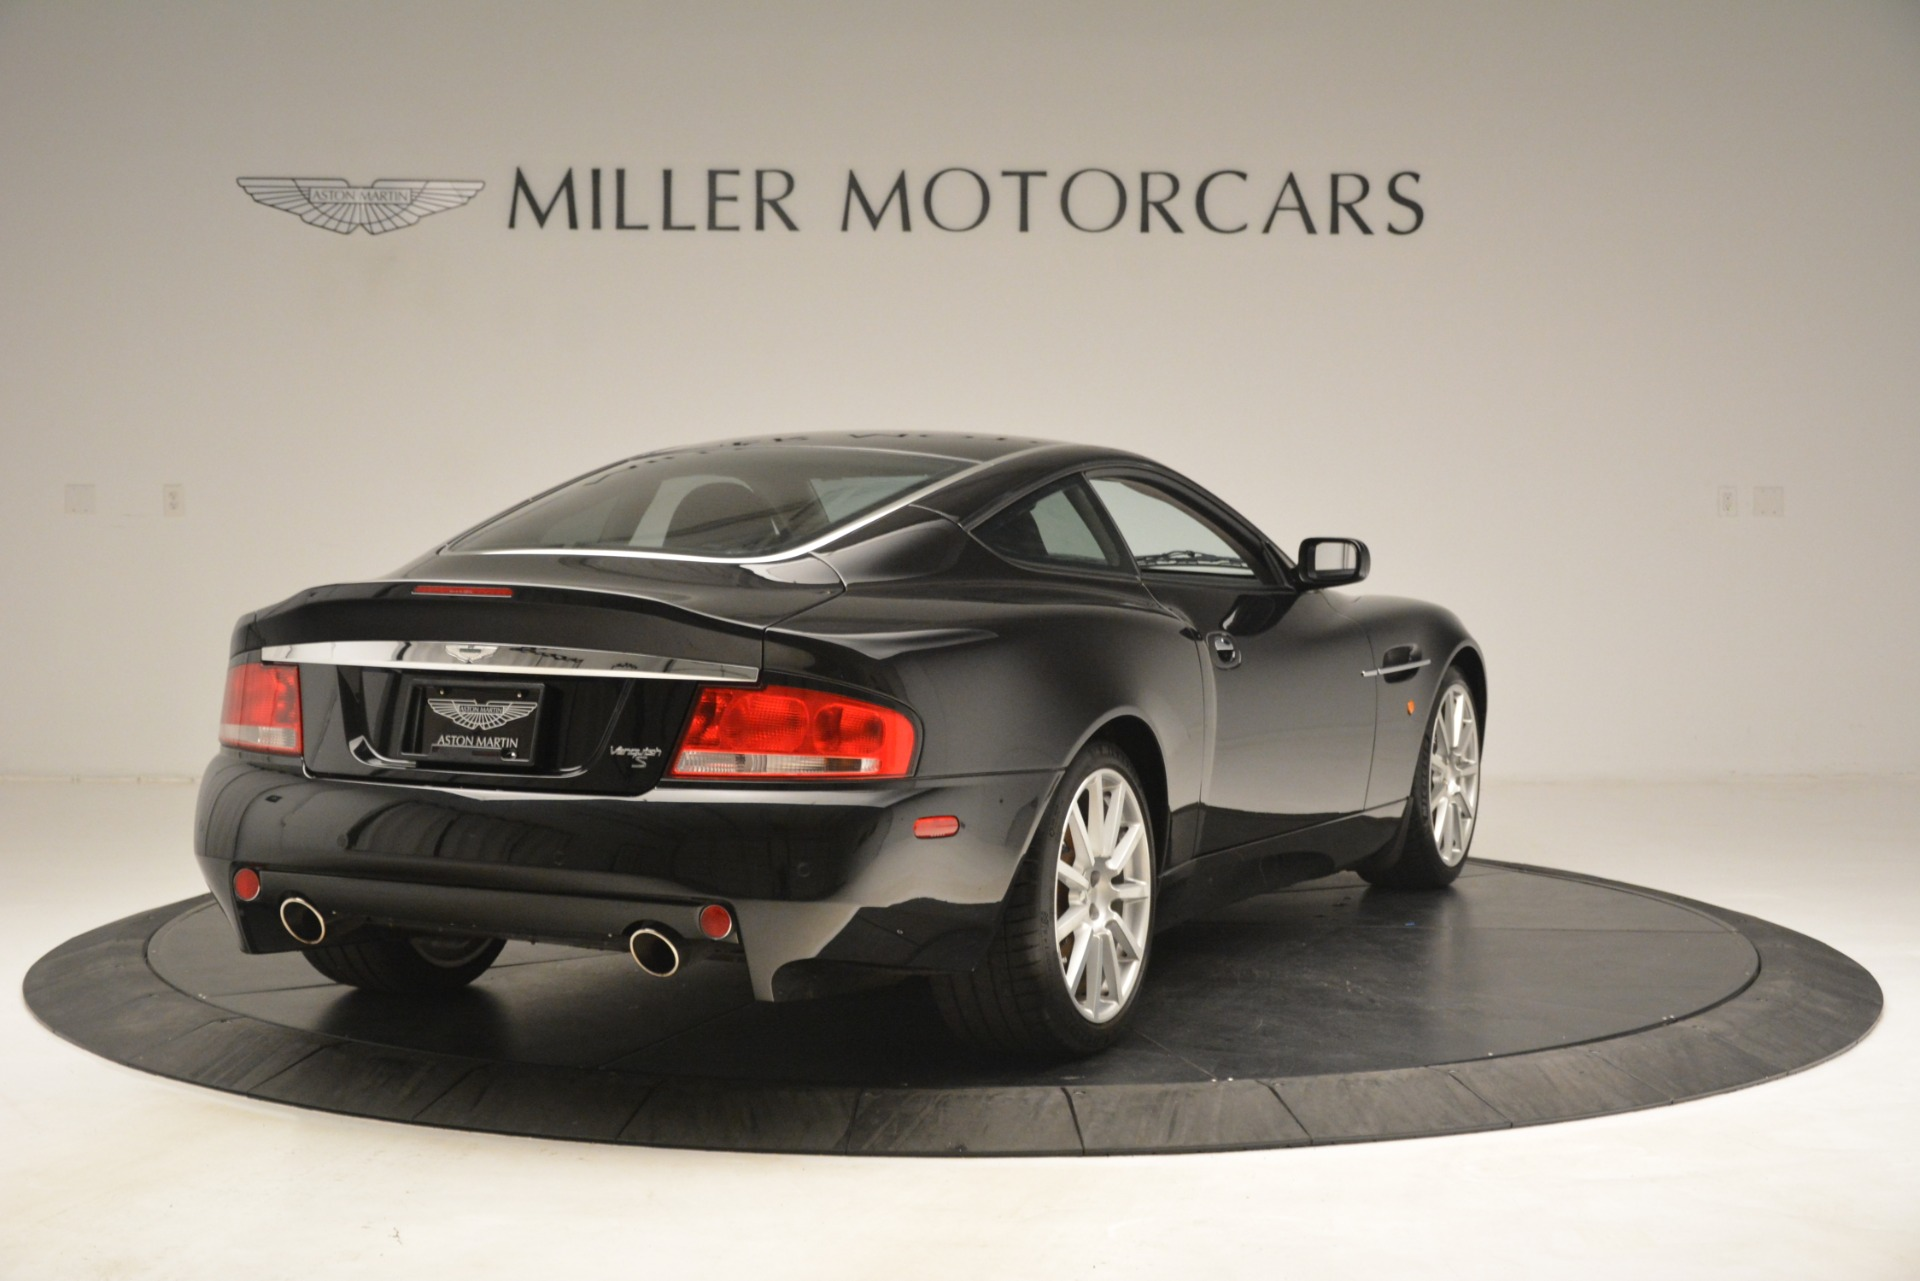 Used 2005 Aston Martin V12 Vanquish S Coupe For Sale In Westport, CT 3218_p7